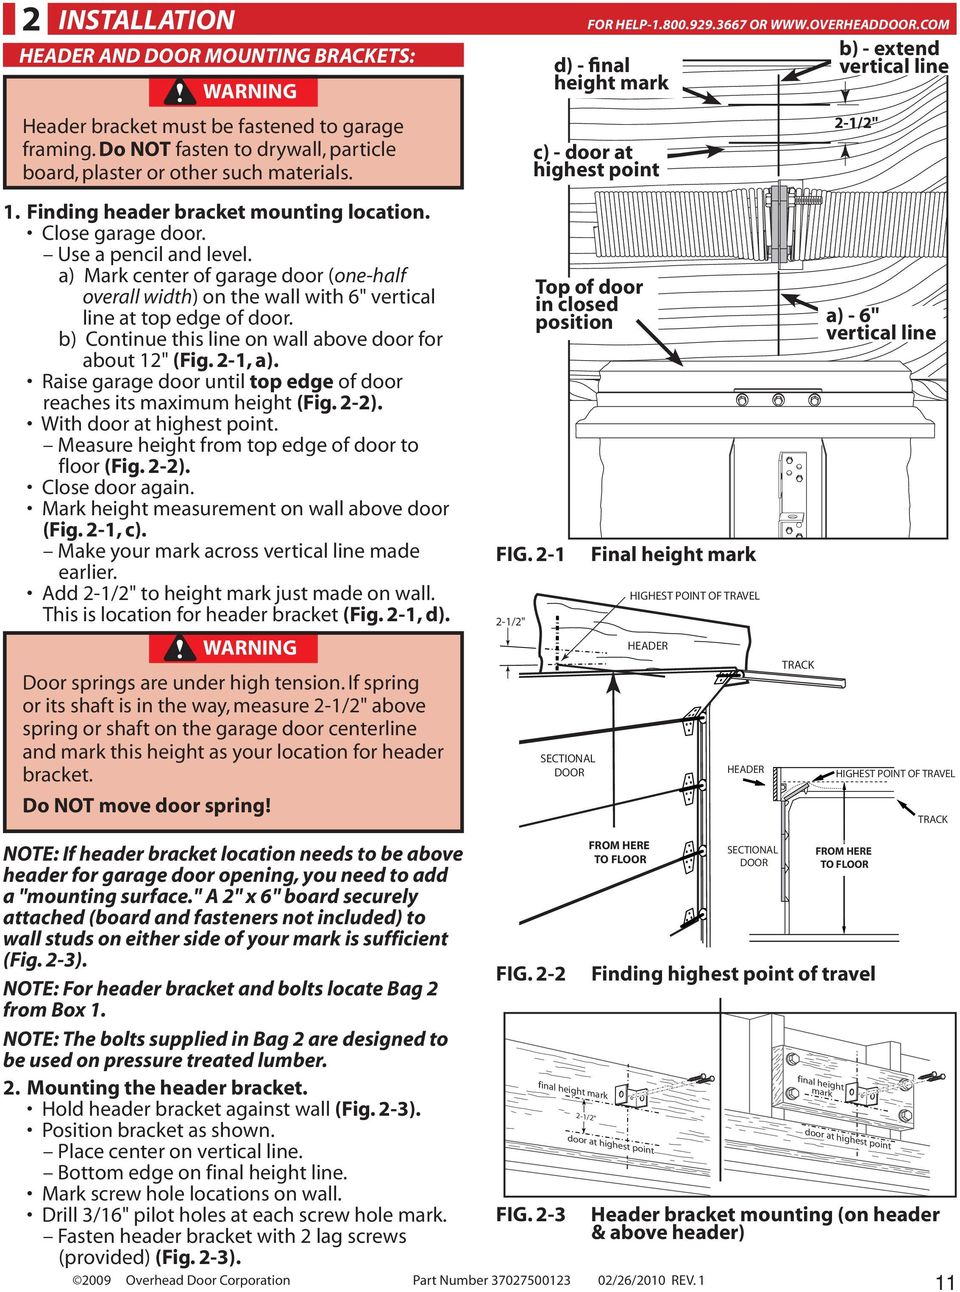 "b) Continue this line on wall above door for about 12"" (Fig. 2-1, a). Raise garage door until top edge of door reaches its maximum height (Fig. 2-2). With door at highest point."